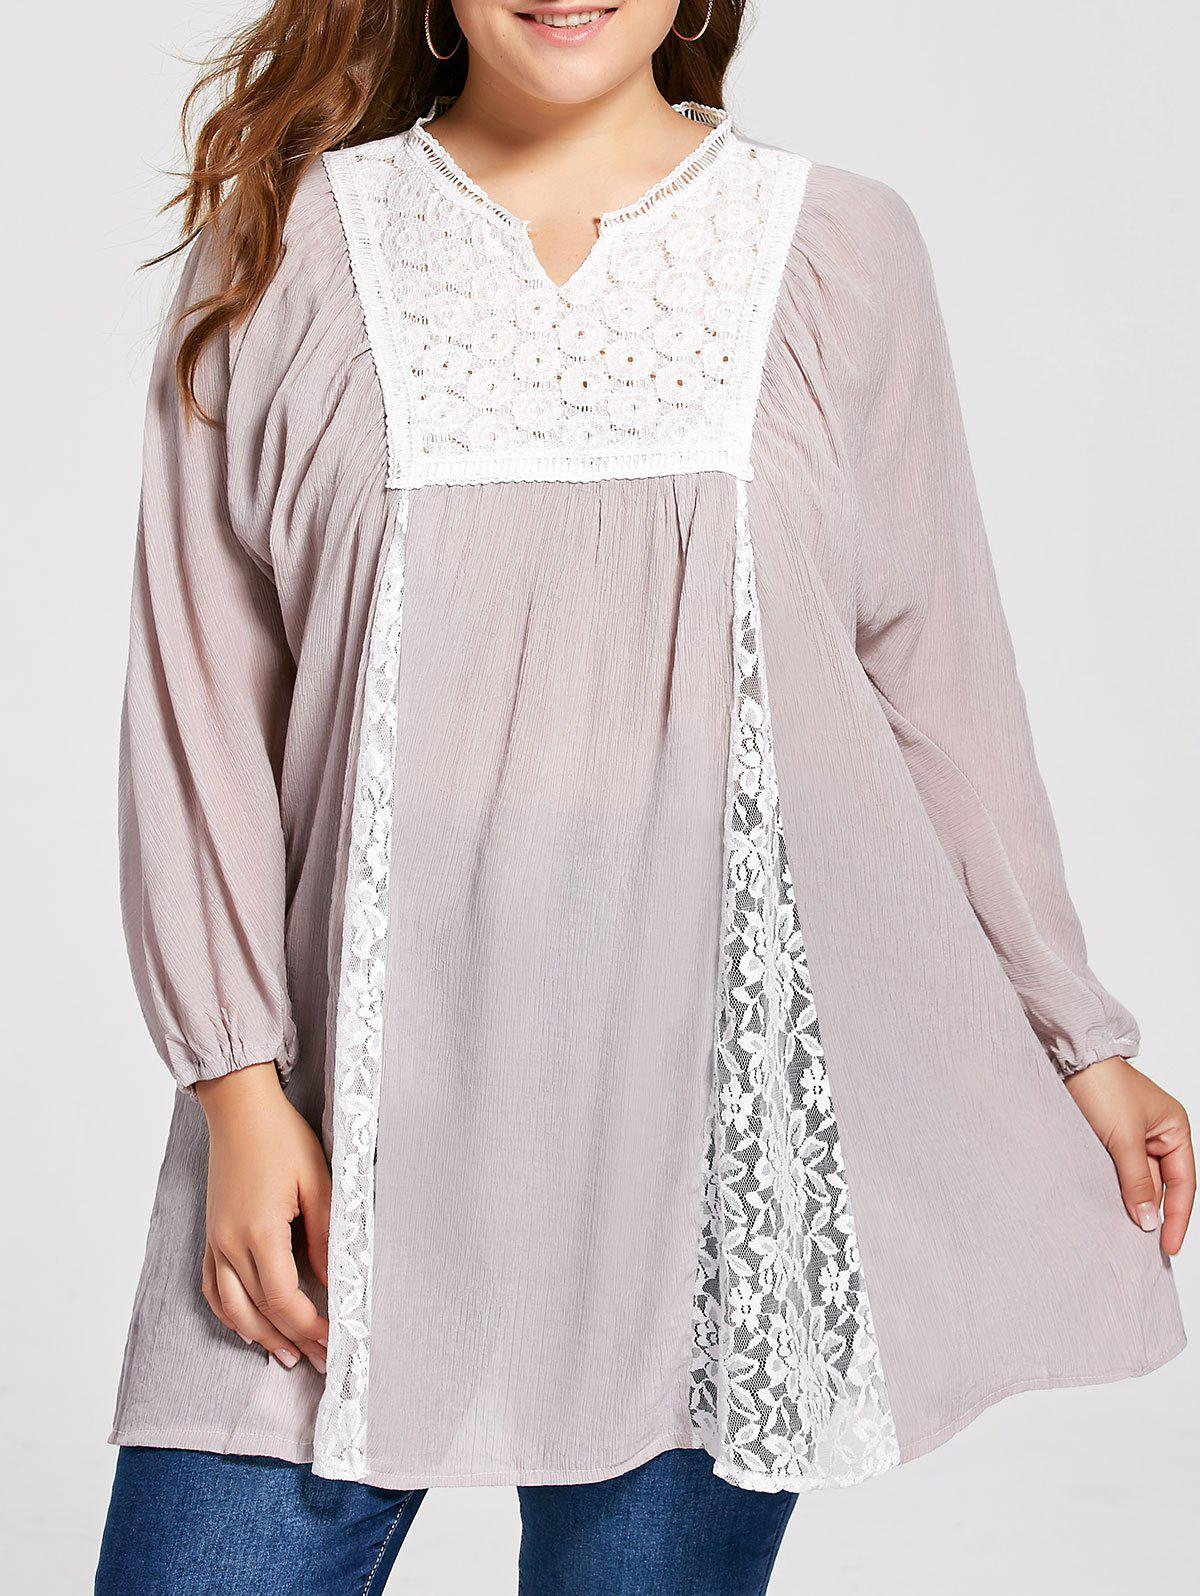 Plus Size Notched Lace Panel Pleated Peasant Top - PALE PINKISH GREY 2XL